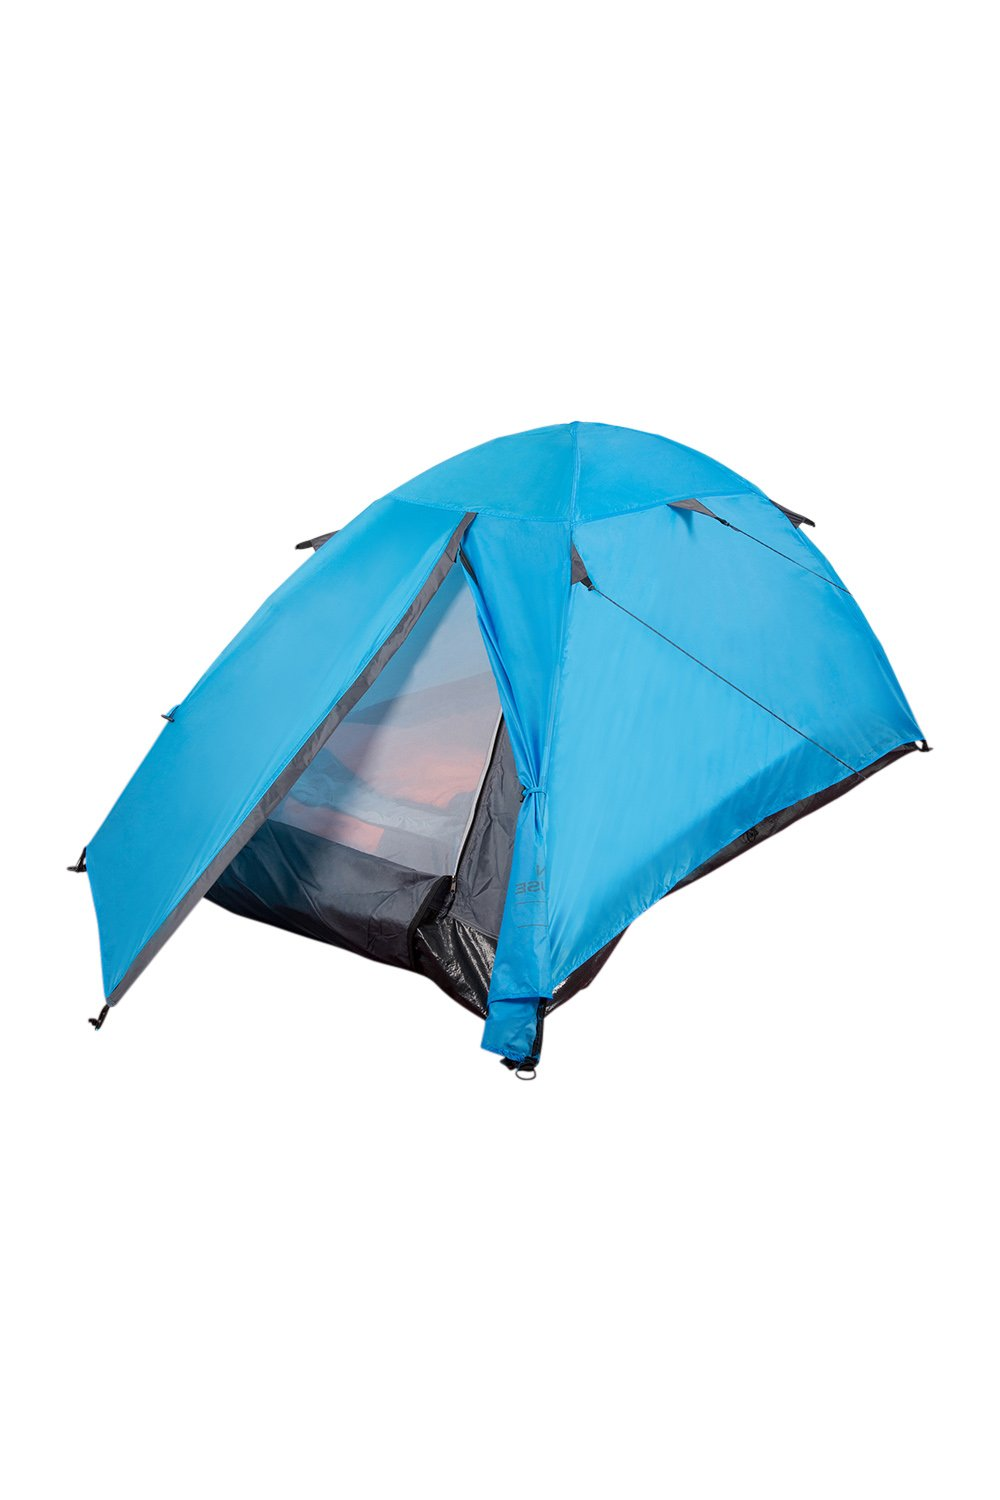 Mountain Warehouse Festival Dome 2 Man Camping Tent - Water Resistant Backpacking Tent 1